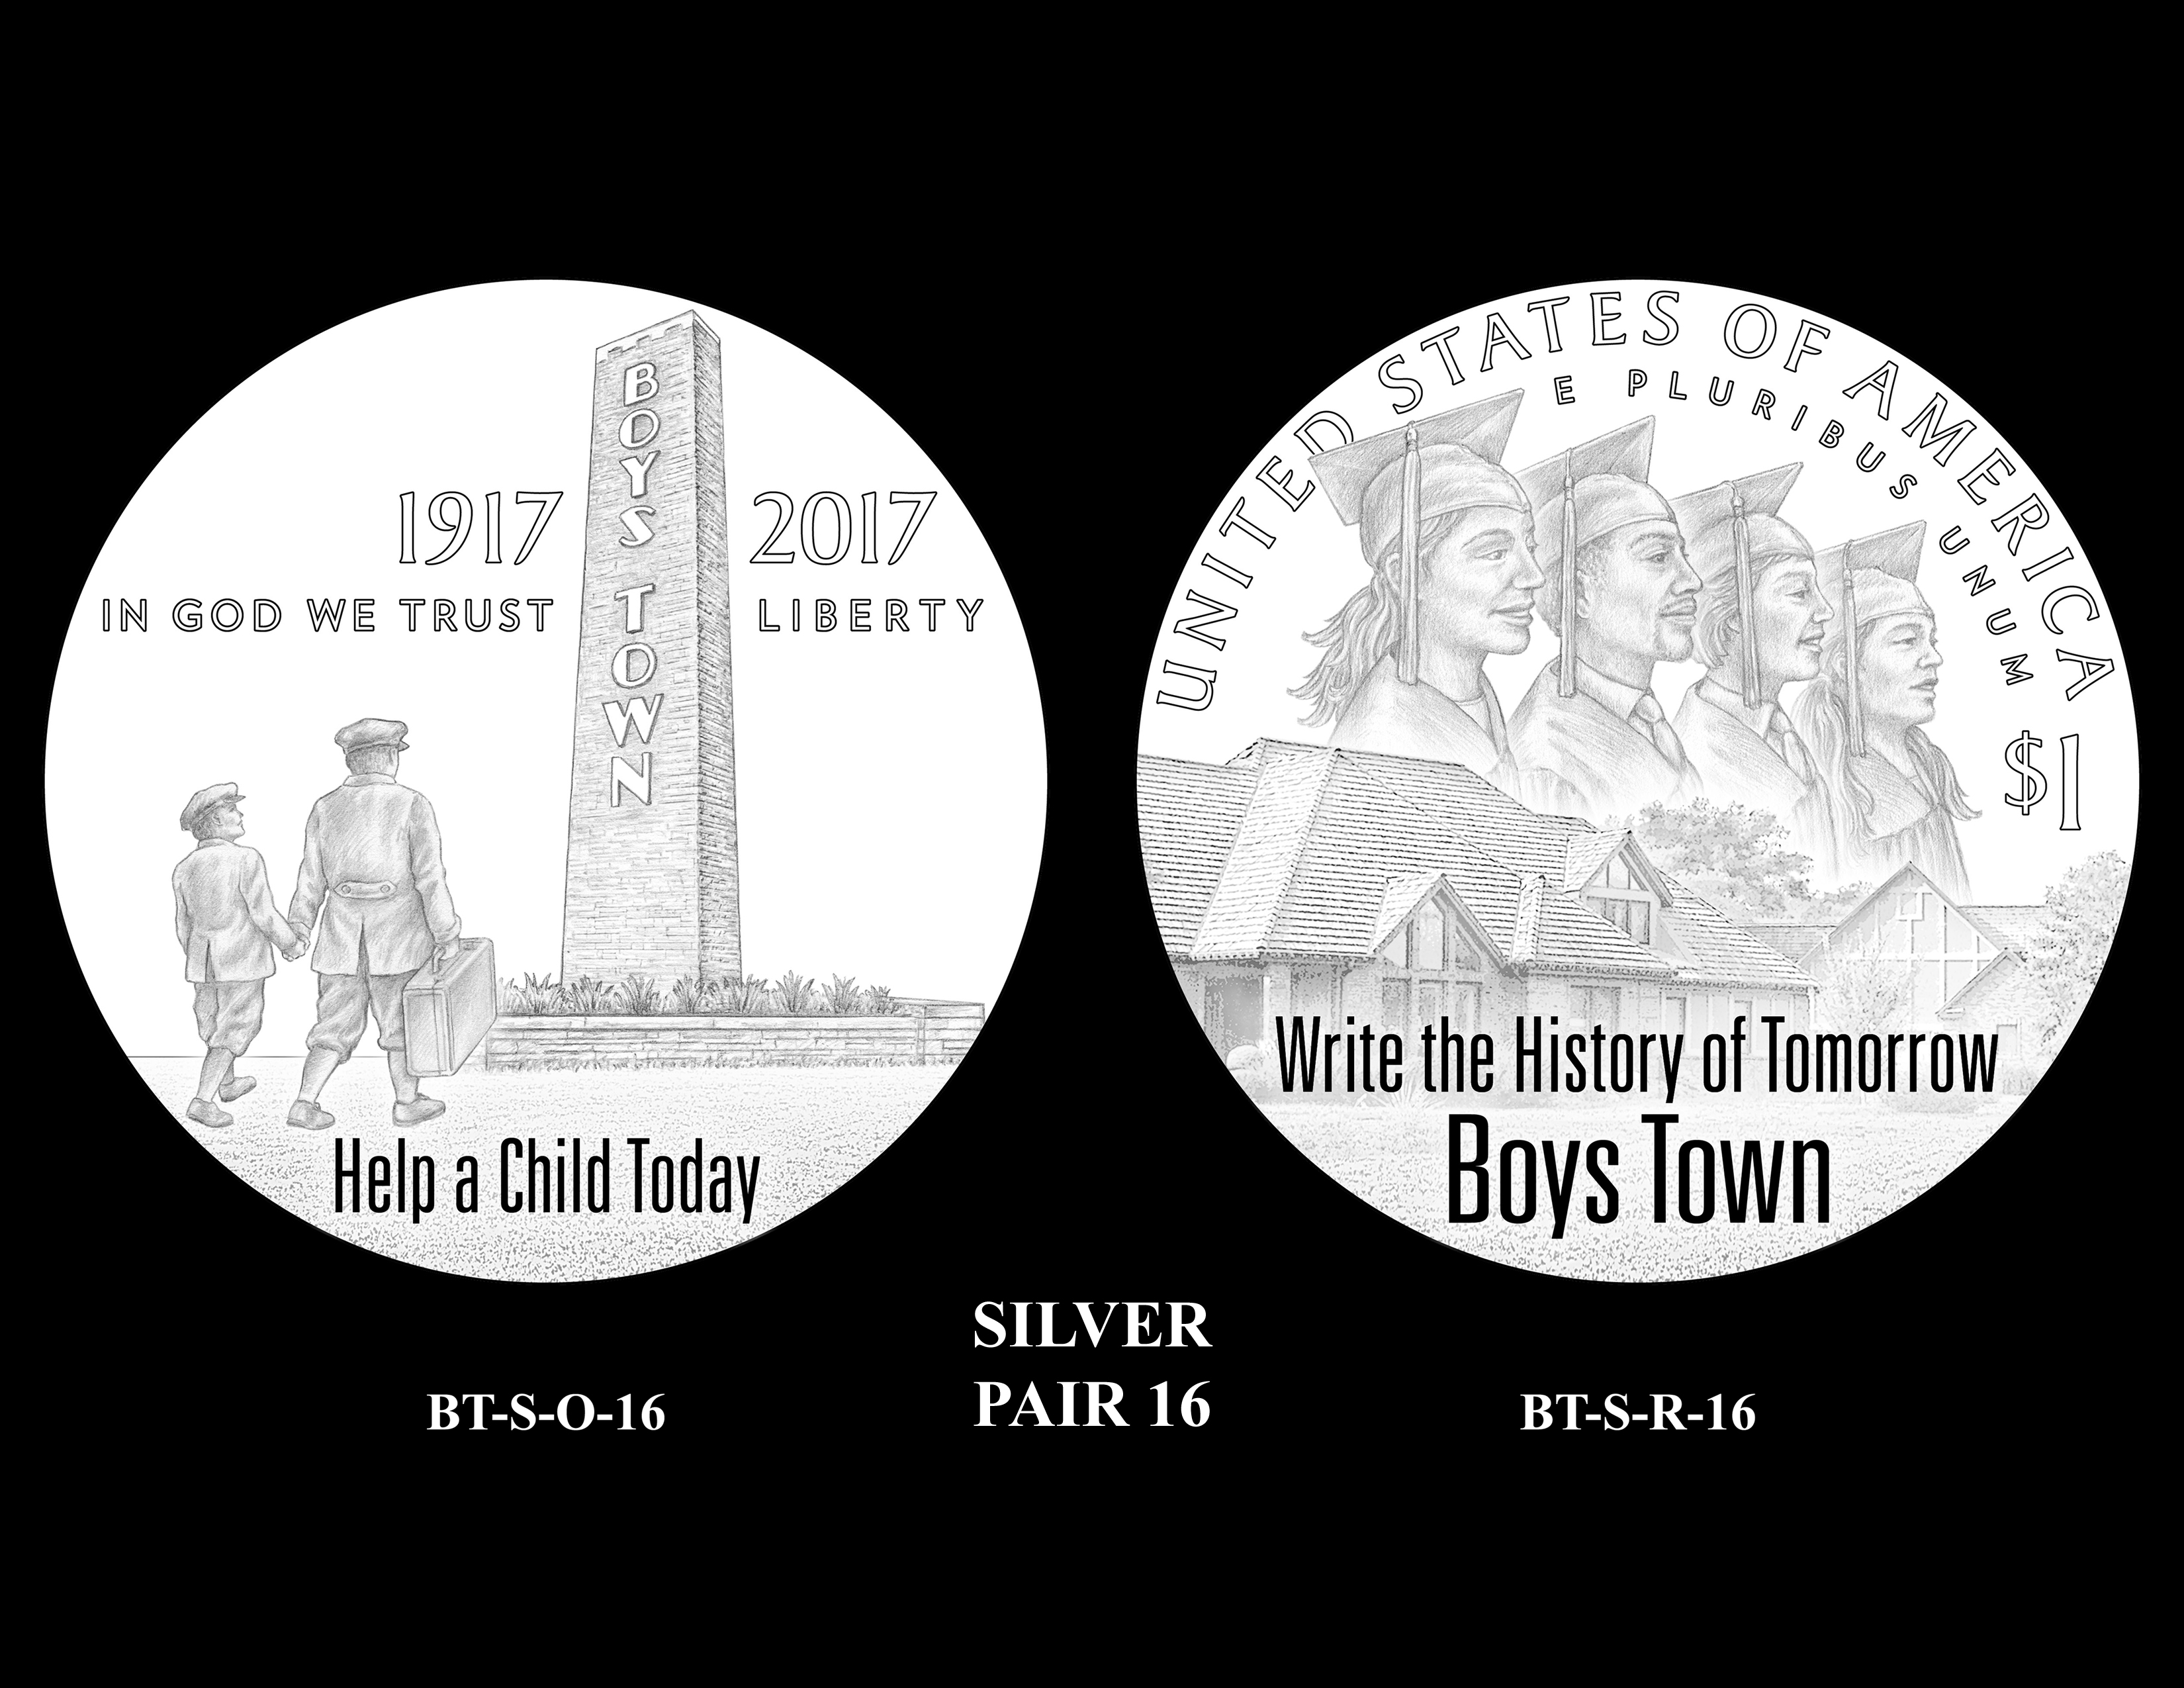 Silver-Pair-16 -- 2017 Boystown Centennial Commemorative Coin  Program